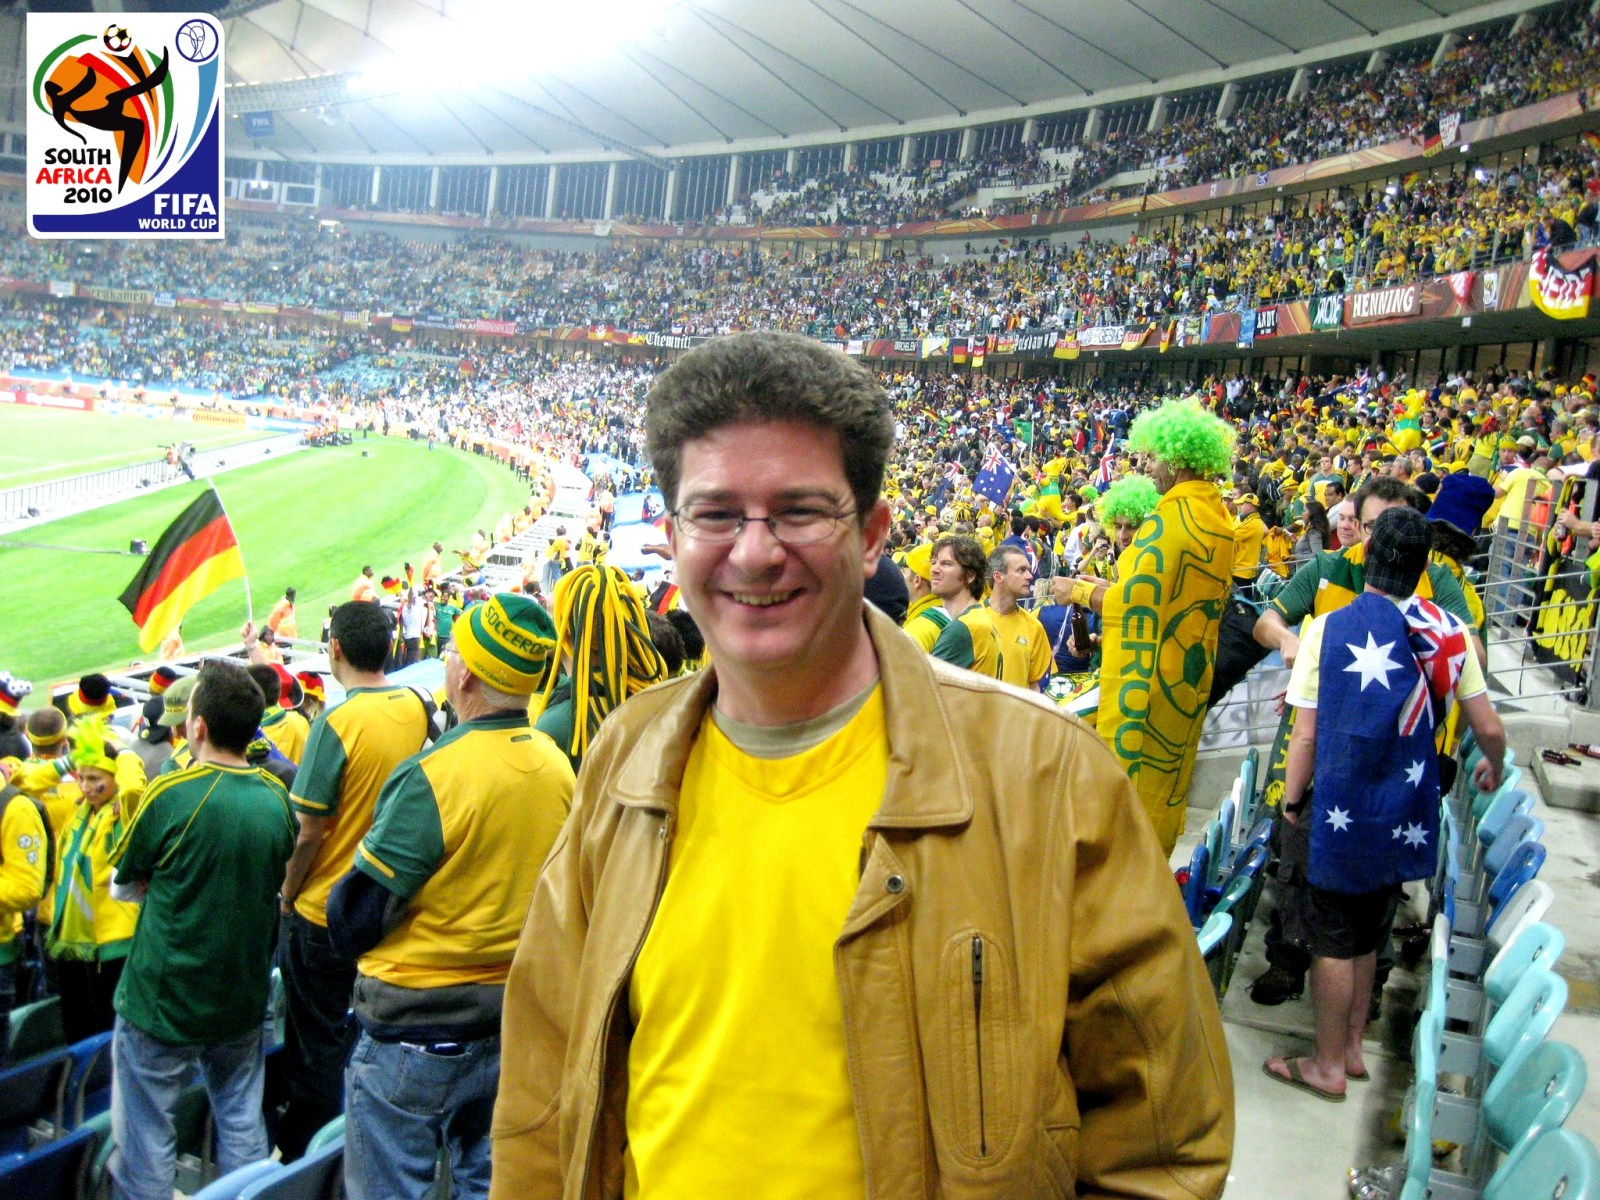 Tim at World Cup 2010 in Africa